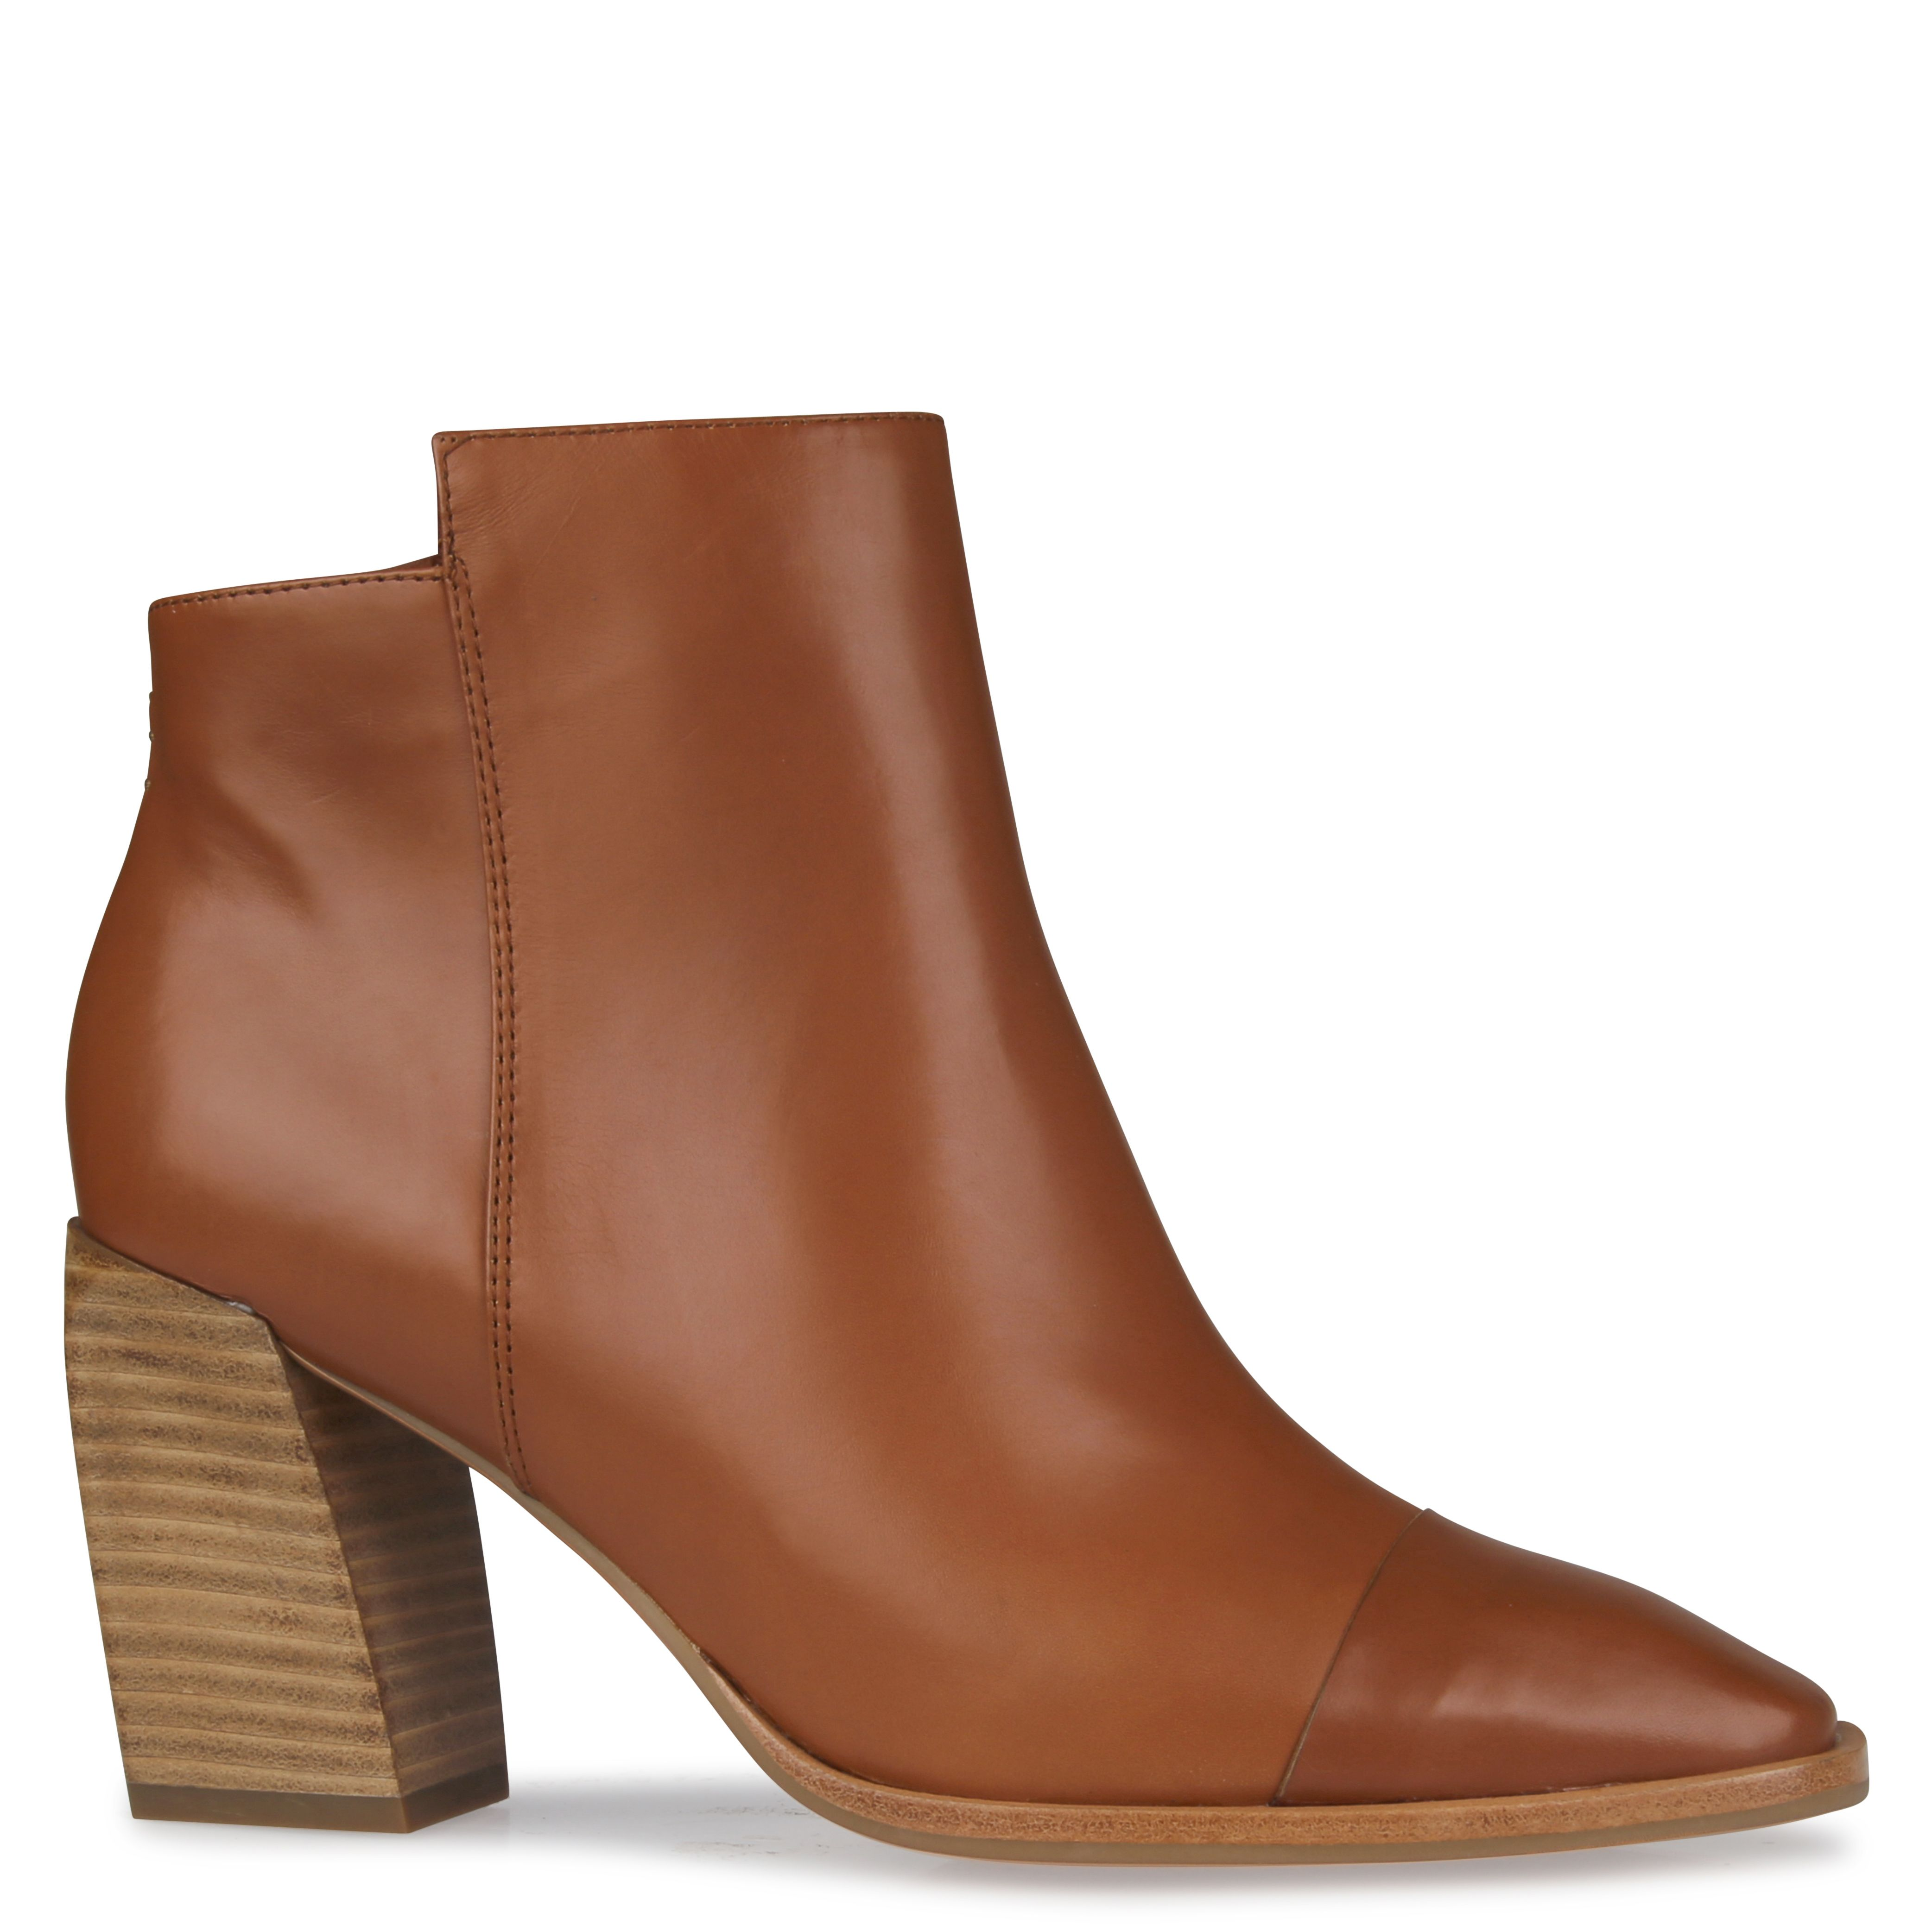 Shoe Connection Sofie Addy Tan Leather Ankle Boot 279 99 Https Www Shoeconnection Co Nz Womens Boots A Tan Leather Ankle Boots Womens Boots Ankle Boots